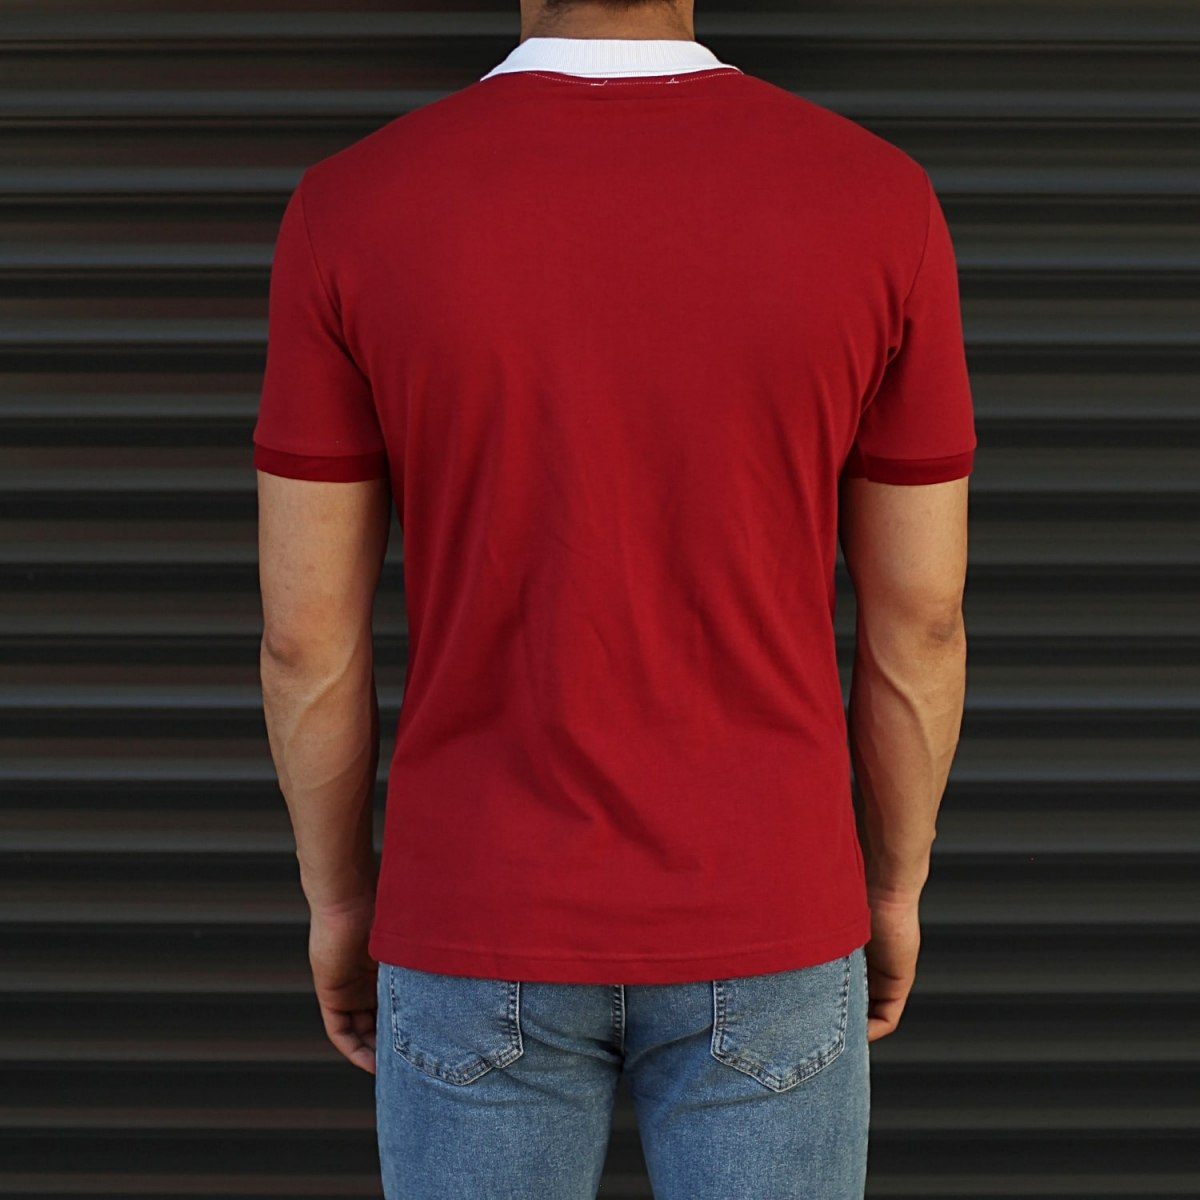 Men's Casual Muscle Fit Polo T-Shirt White & Red Mv Premium Brand - 3